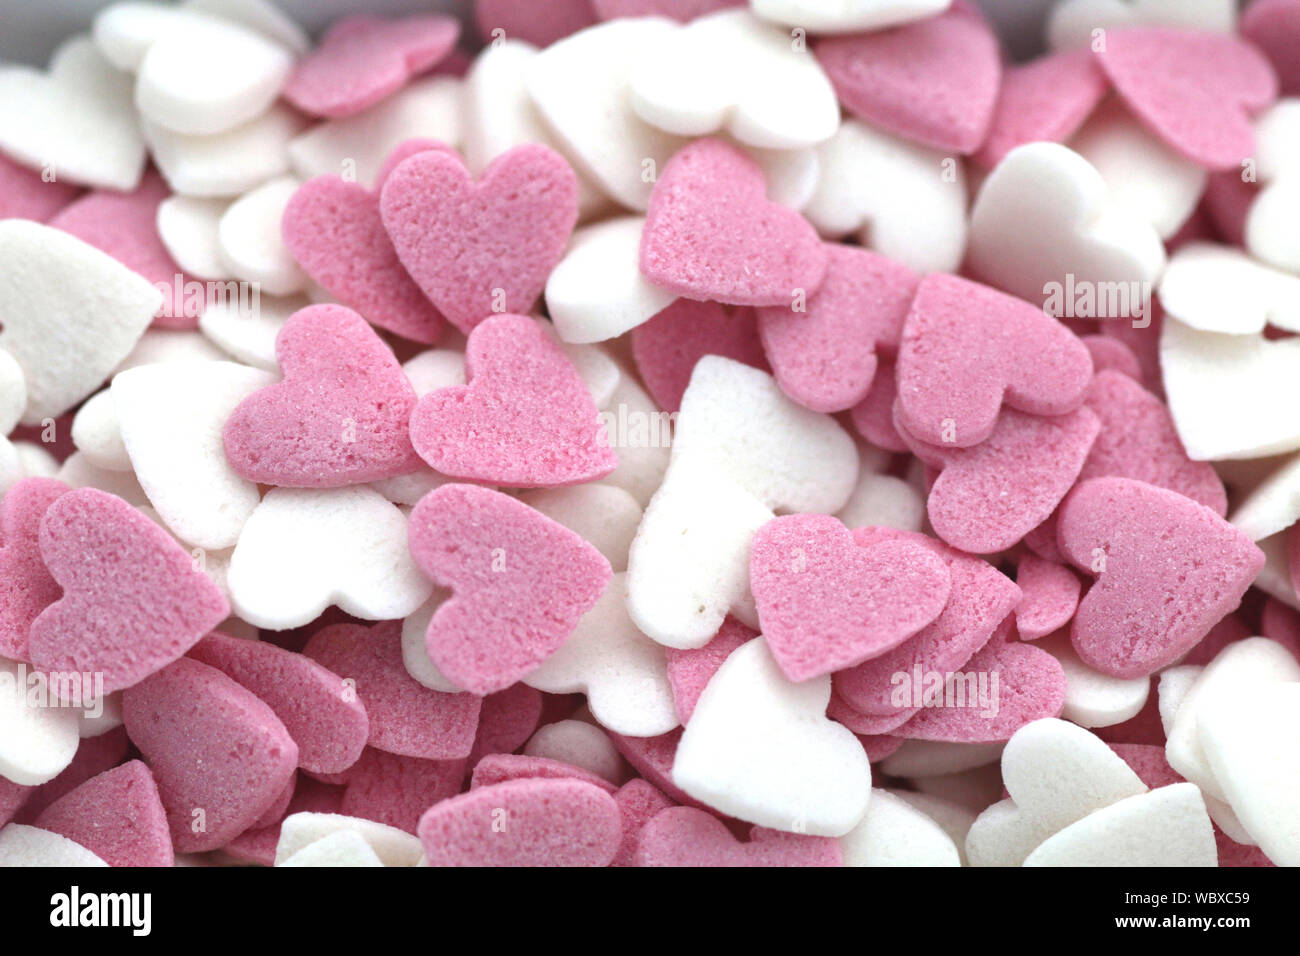 Full Frame Shot Of Heart Shaped Sweet Candies Stock Photo